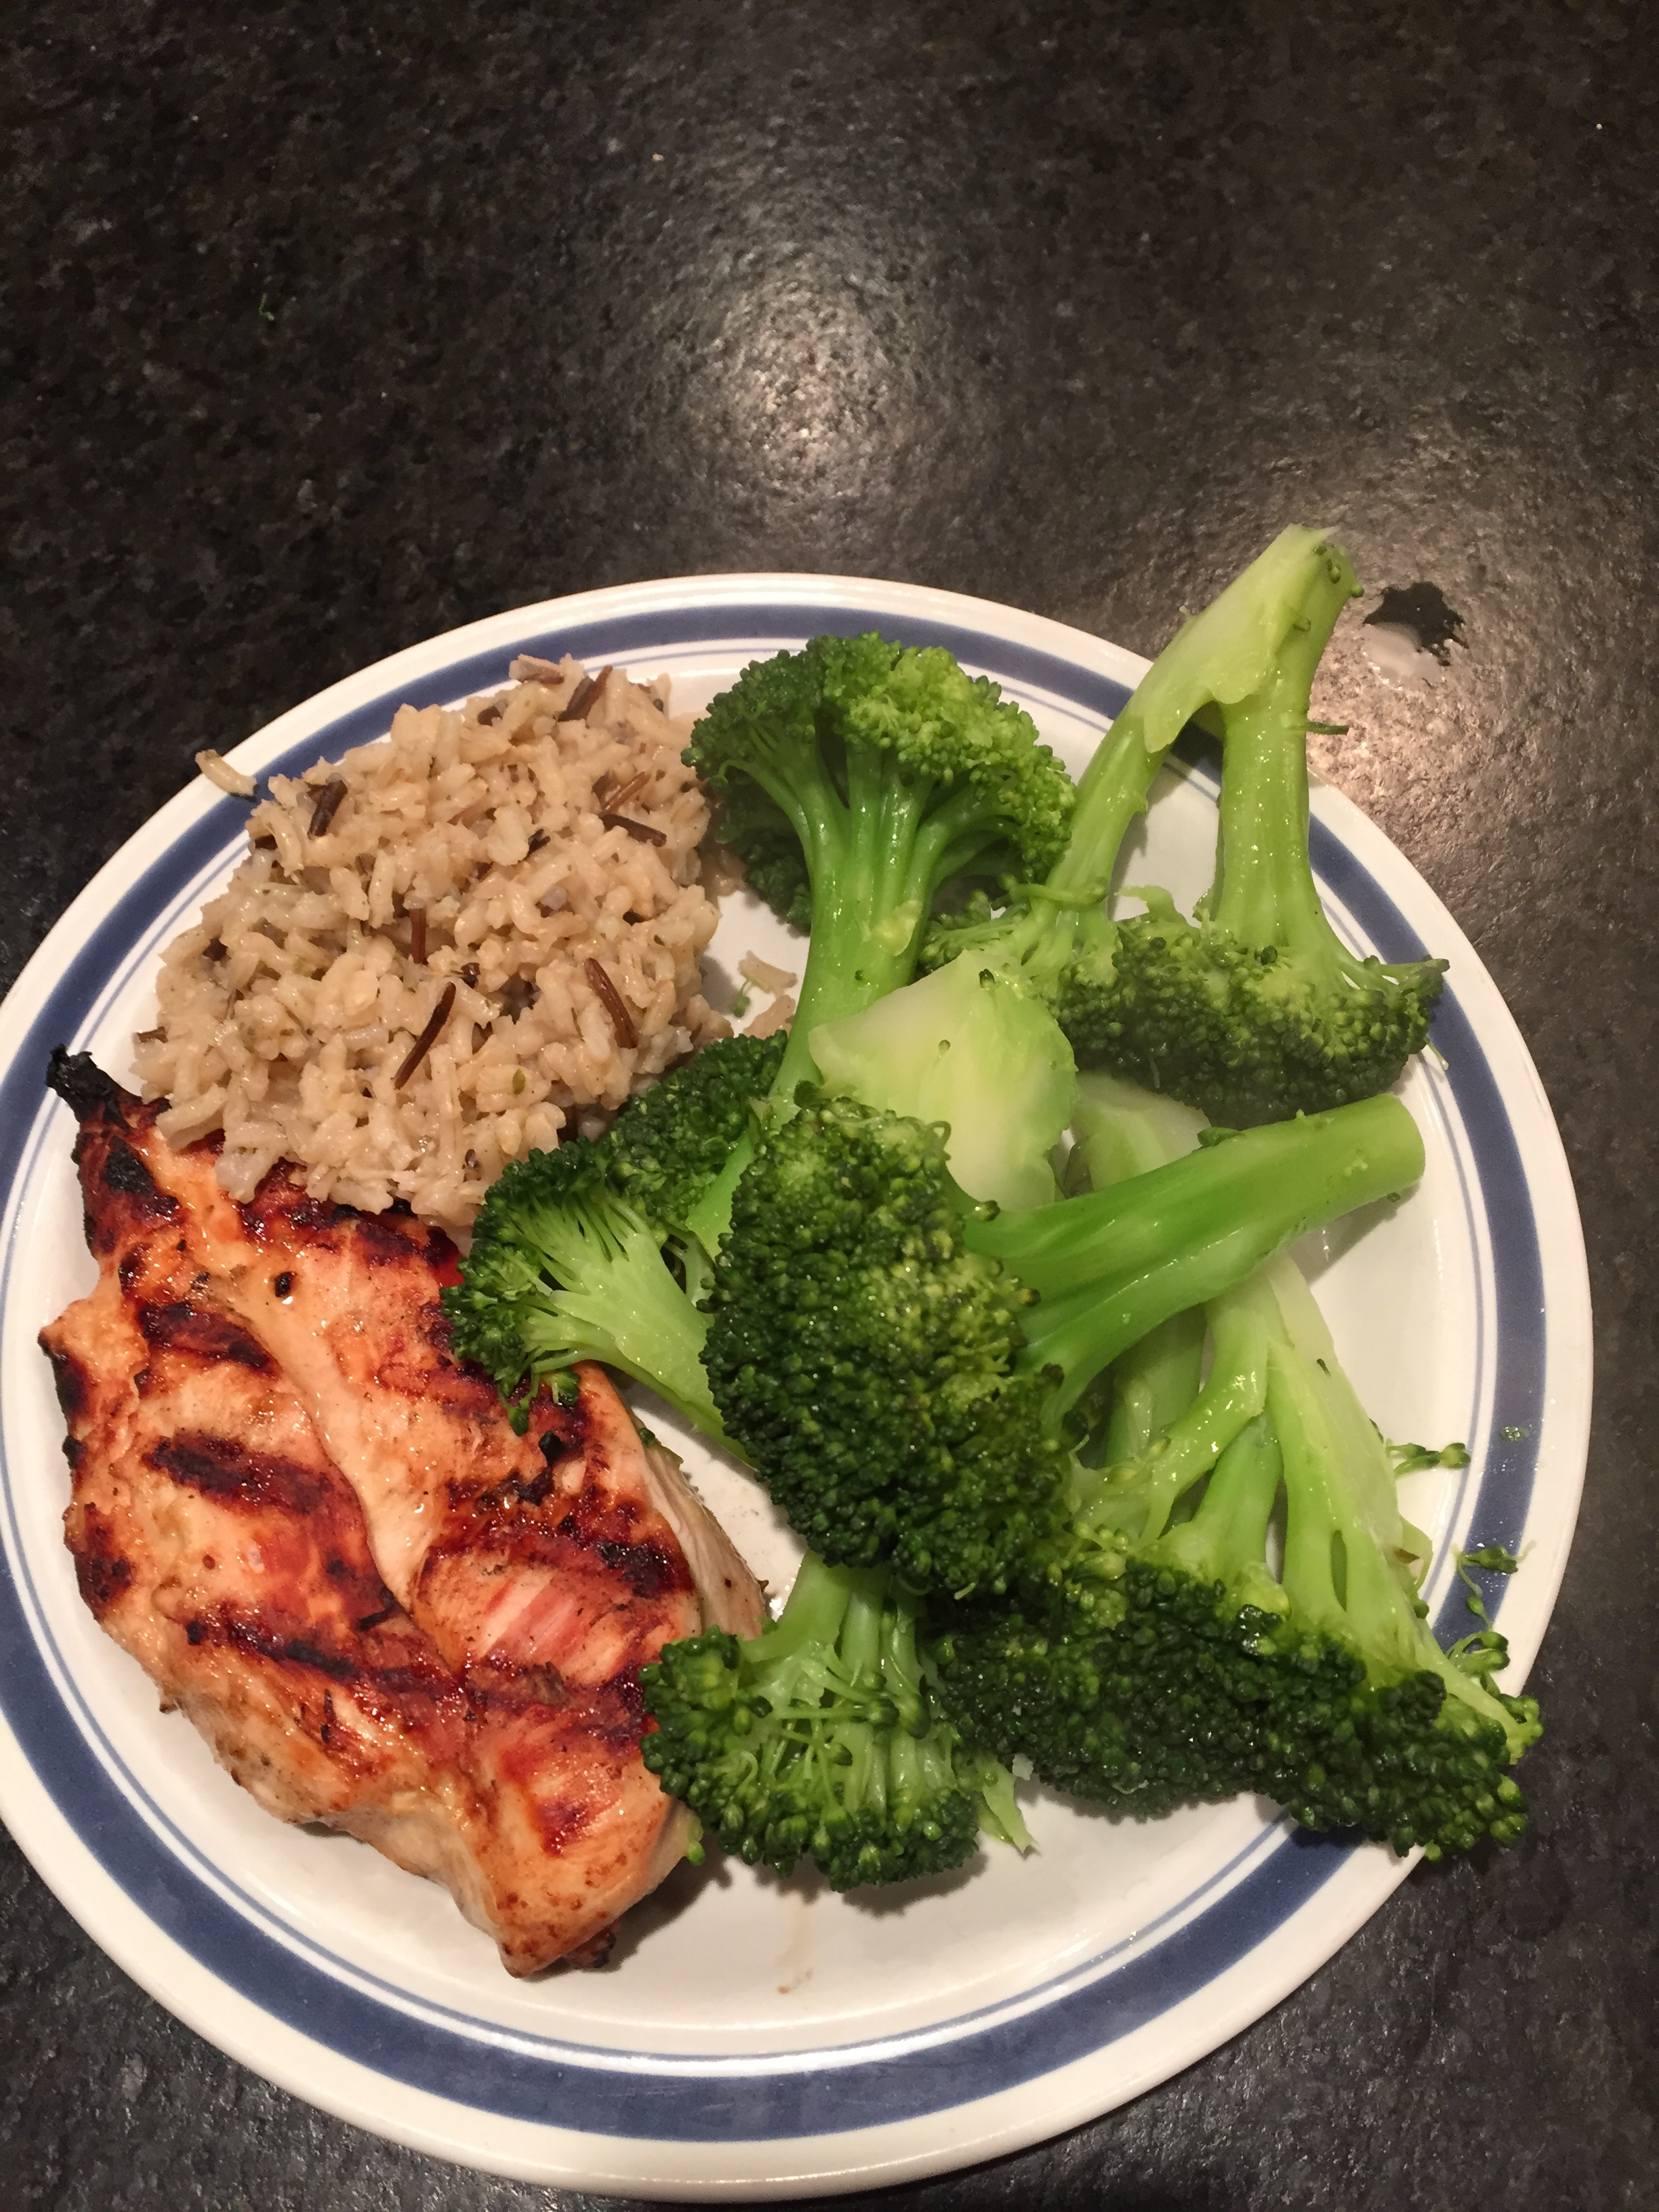 The Best Grilled Chicken! Notice half the plate is veggies! I used organic Smart Chicken which is always tender and juicy!